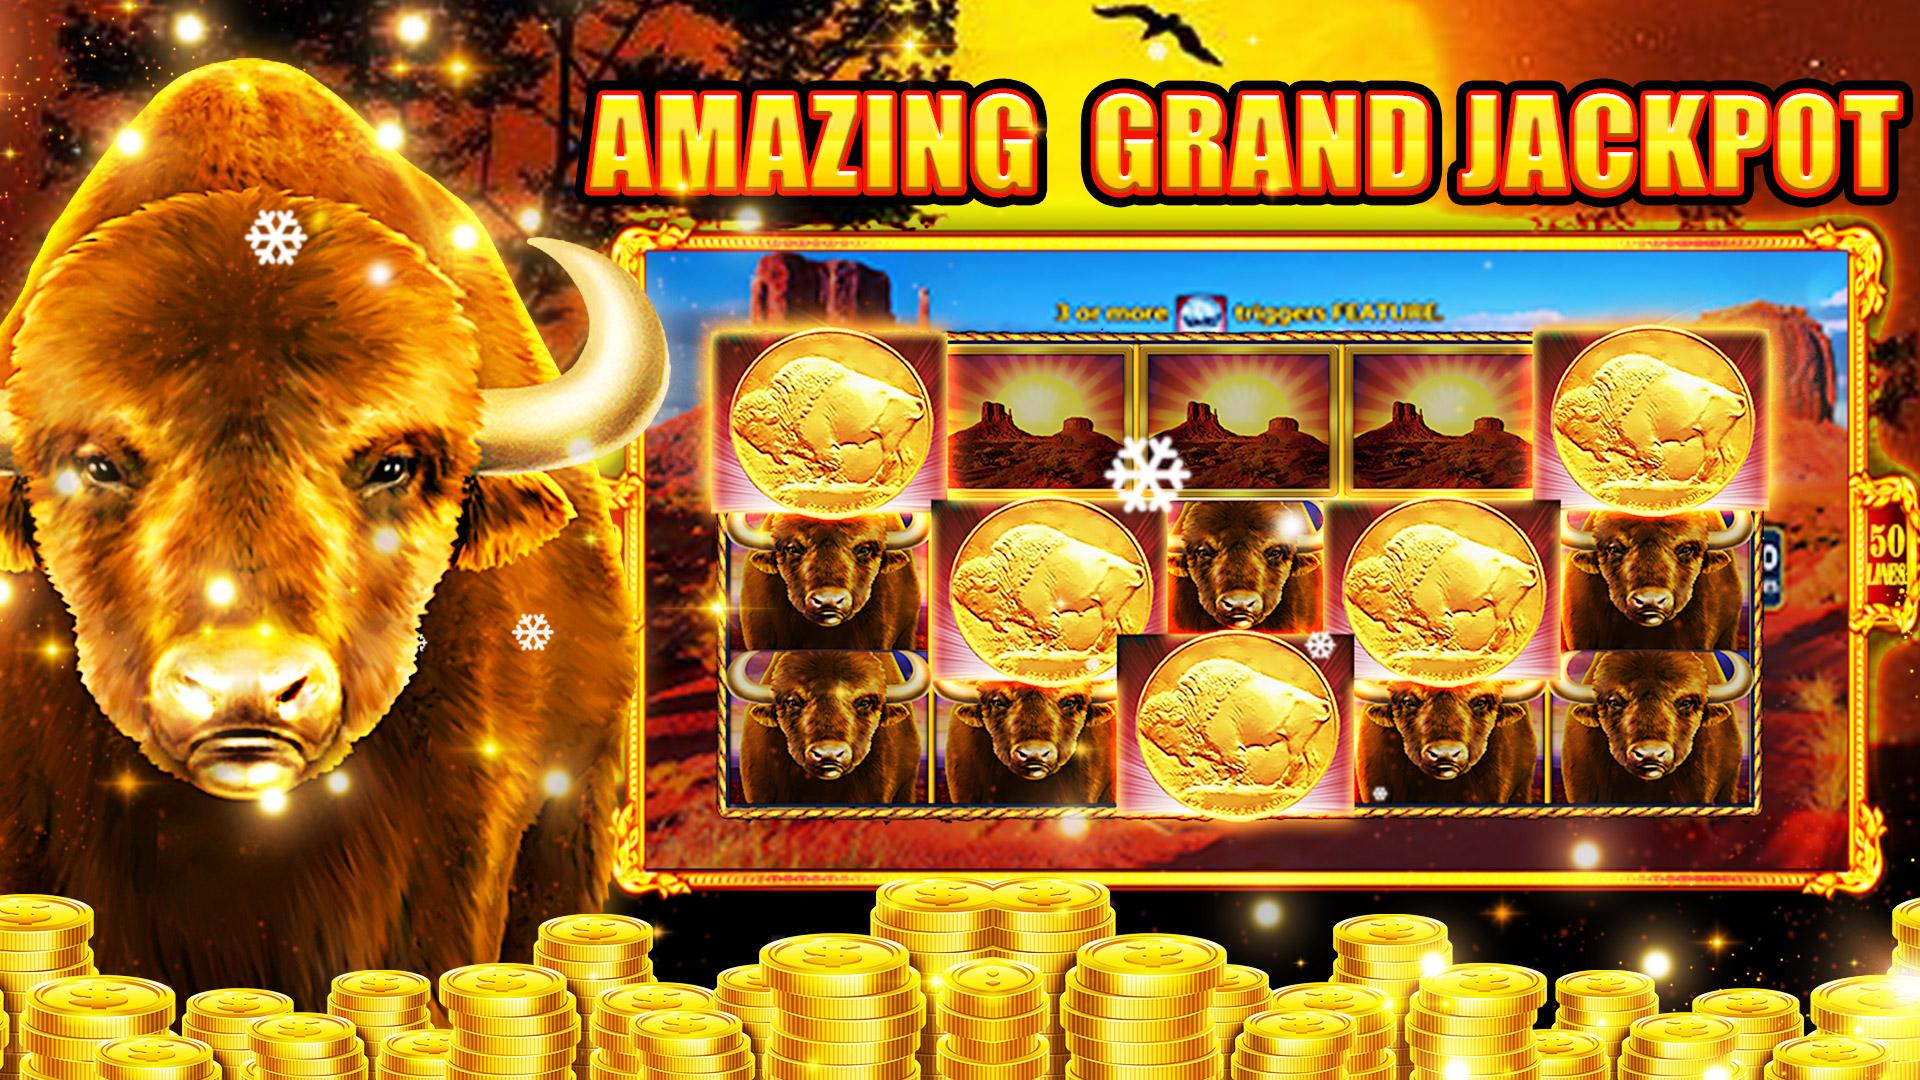 Grand Jackpot Slots Pop Vegas Casino Free Games 1.0.44 Screenshot 3